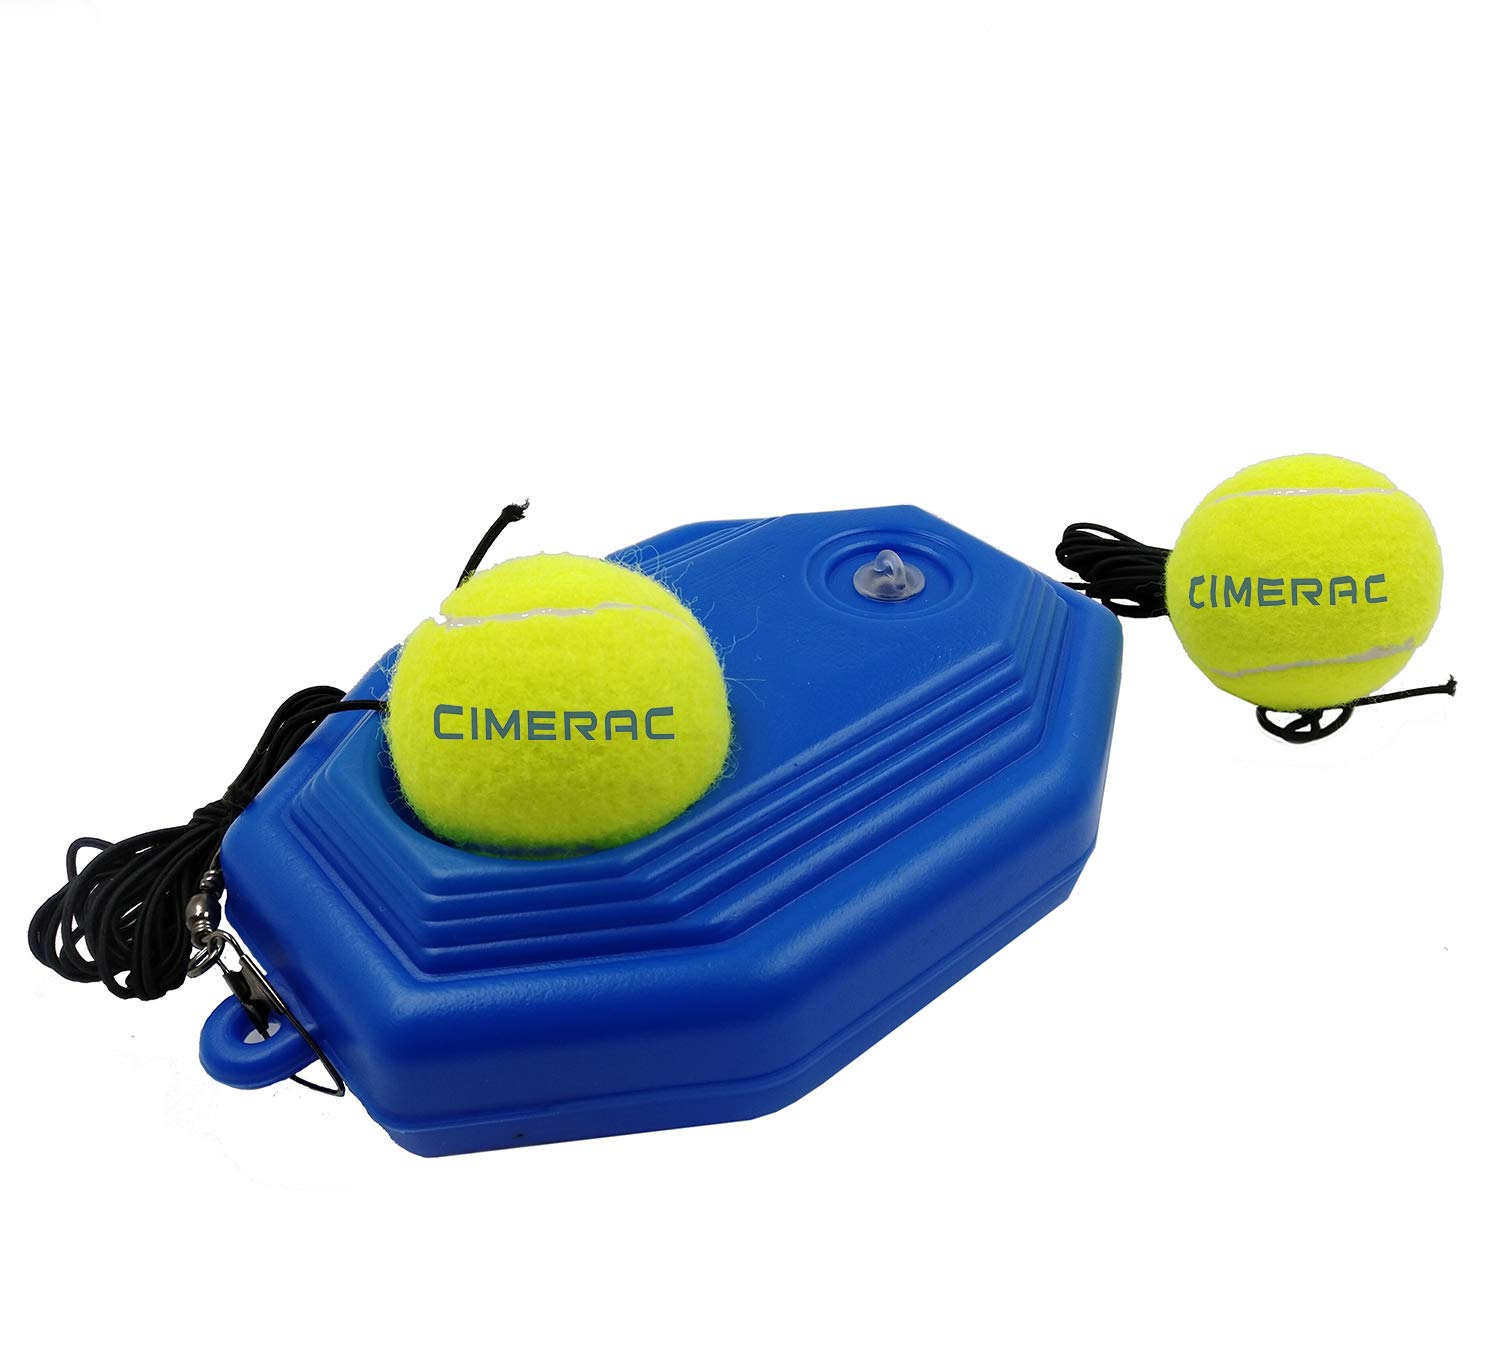 CIMERAC Tennis Trainer Tennis Equipment Tennis Ball Trainer Practice Training Tool Sport Exercise